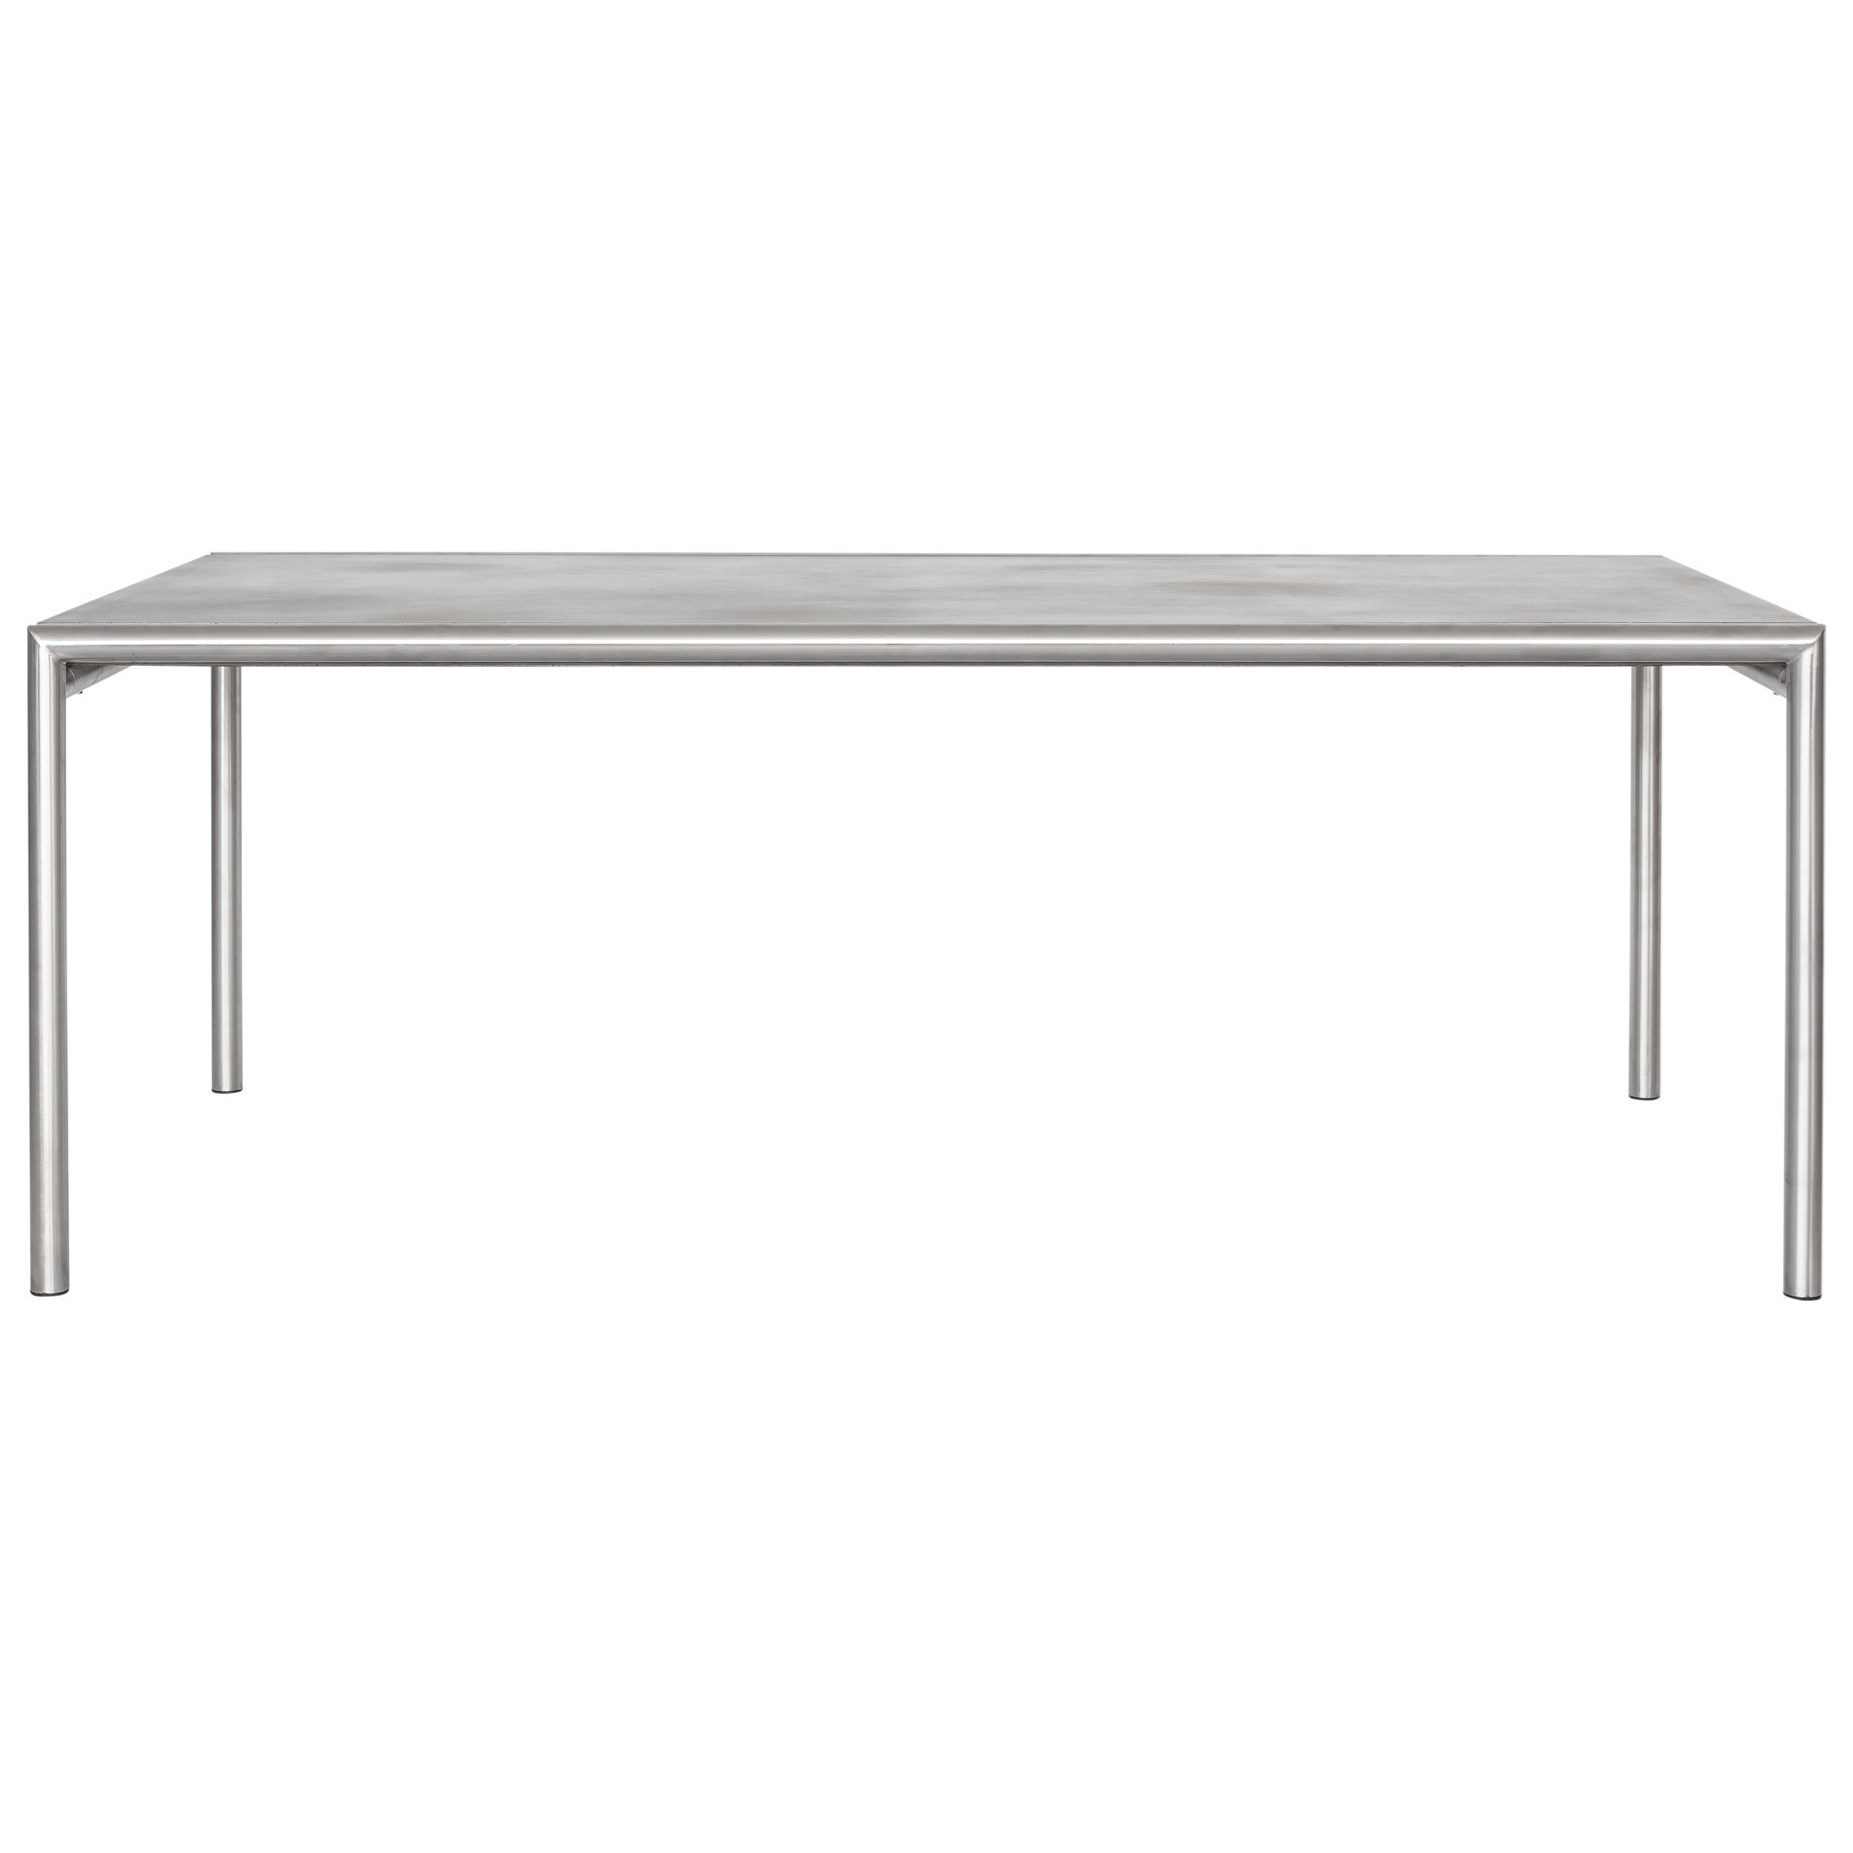 Table Bistrot Inox Moe S Home Collection Inox Contemporary Outdoor Dining Table